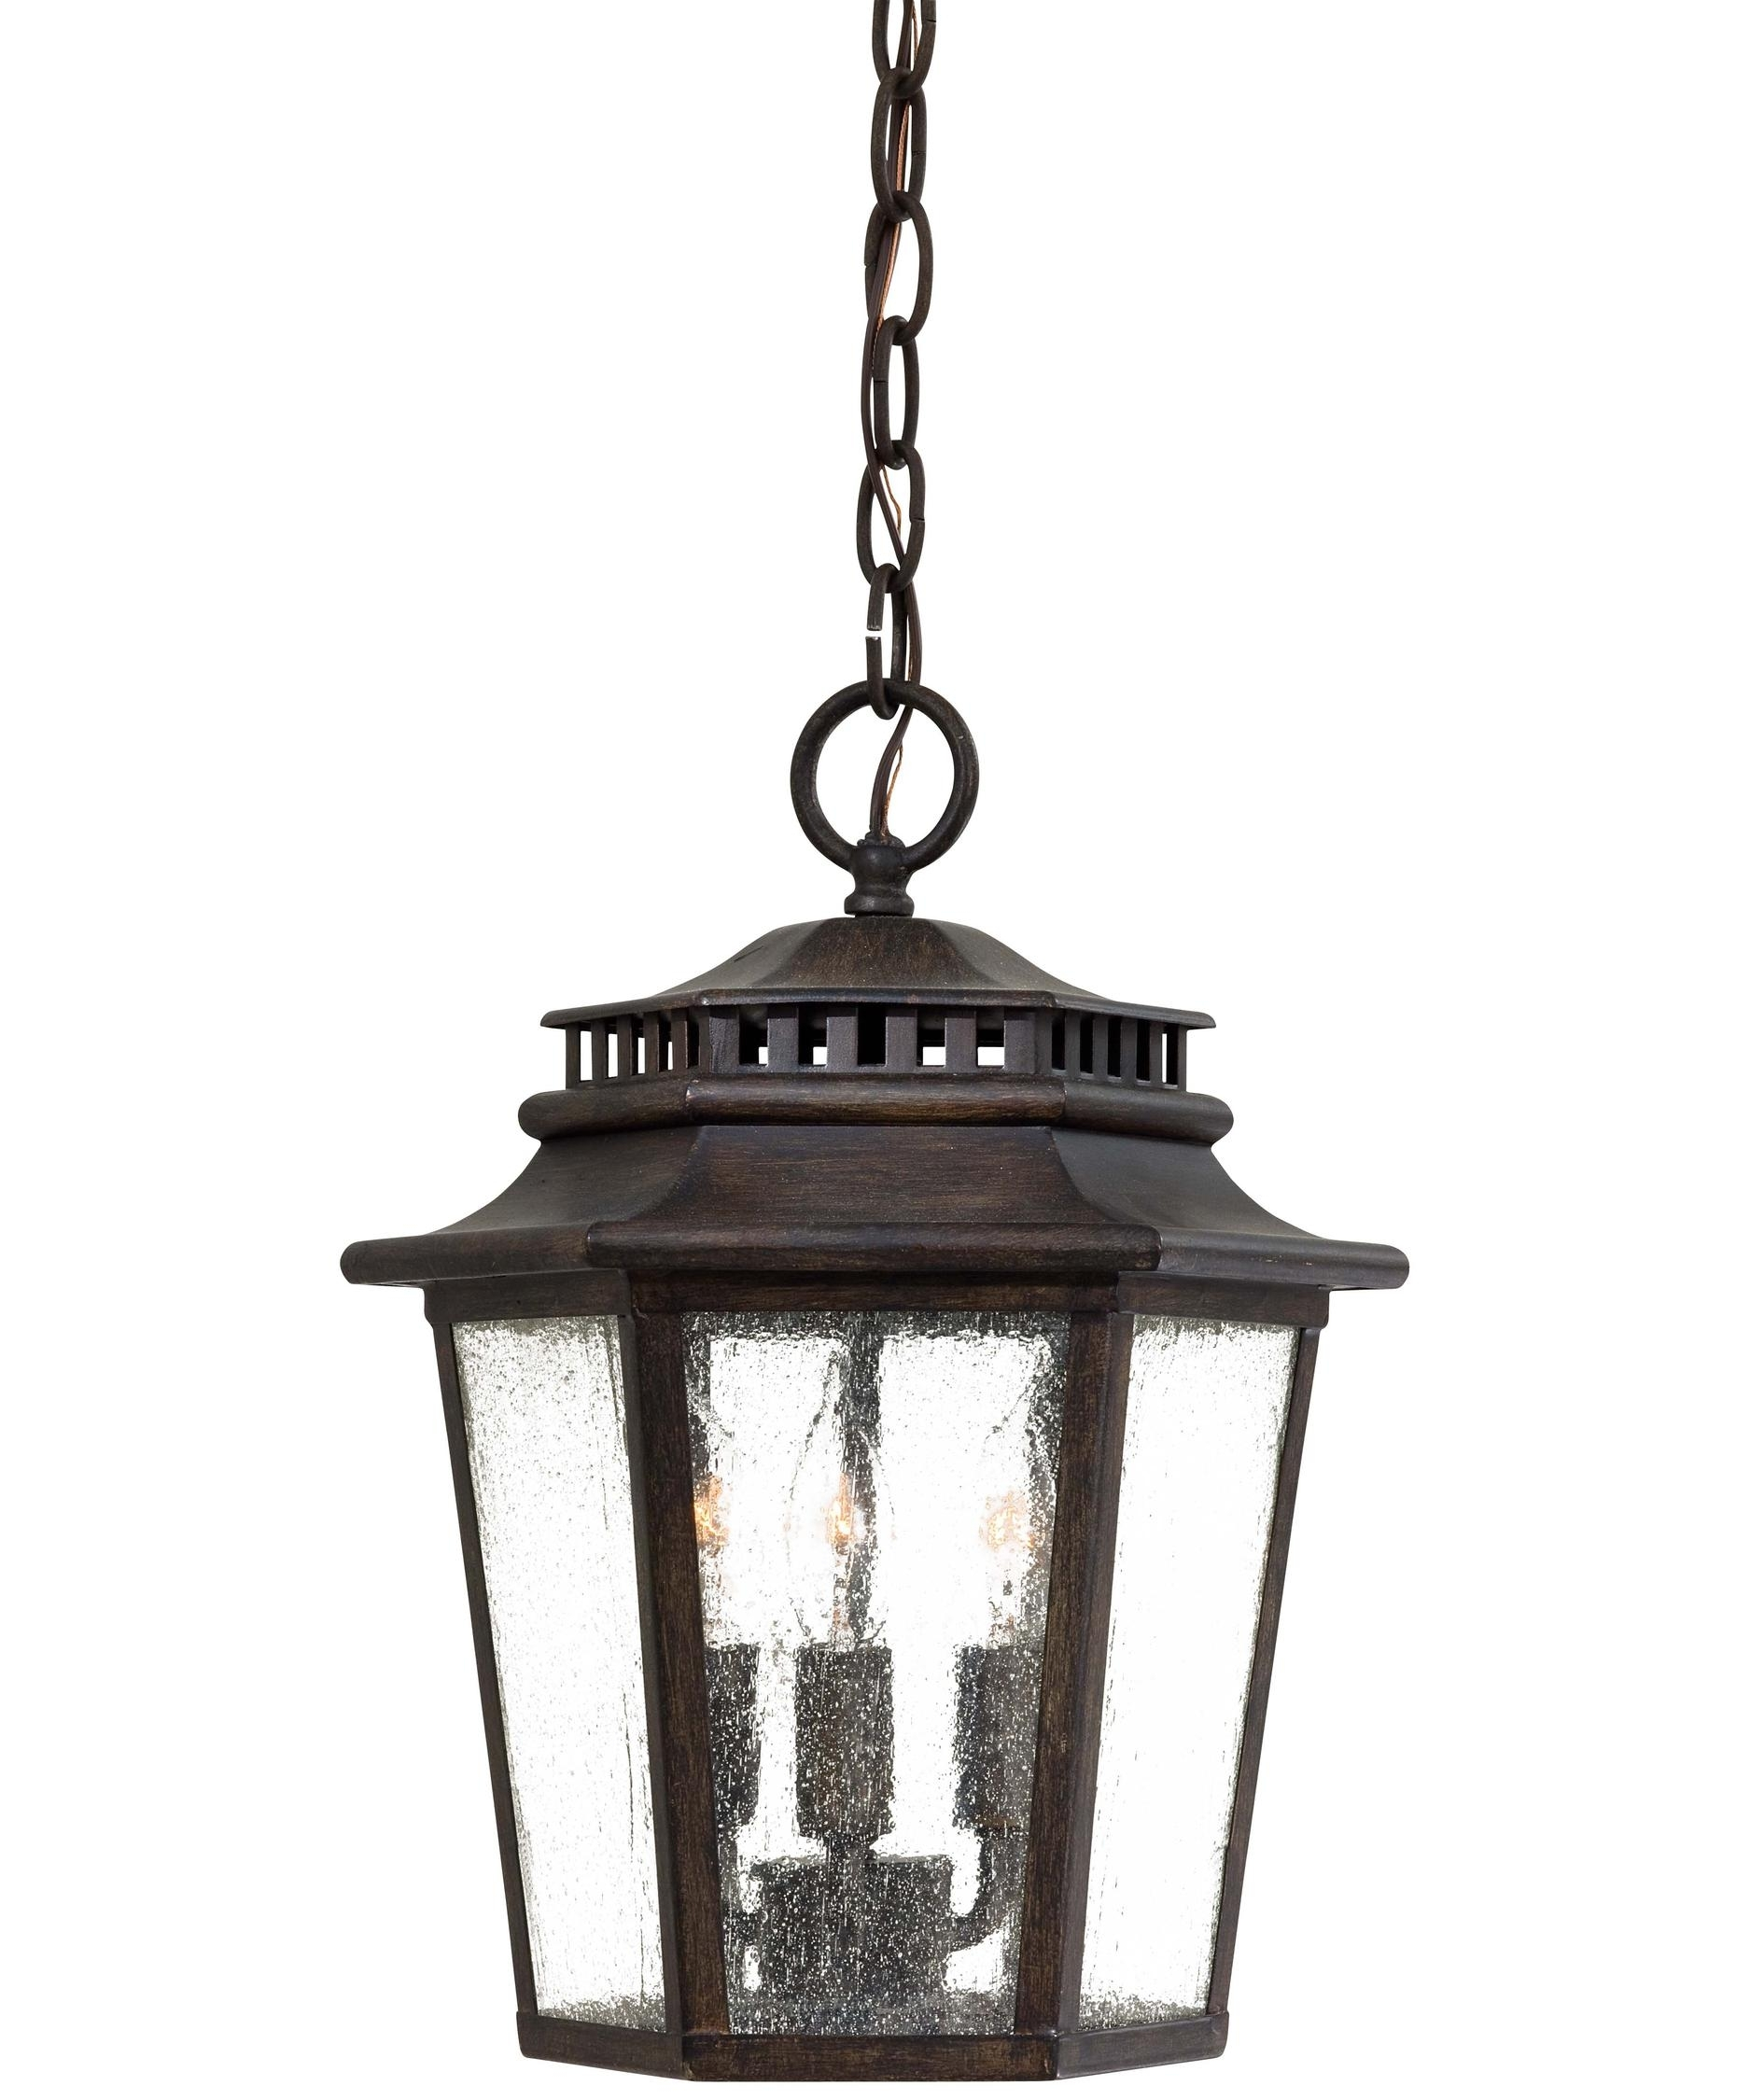 Fixtures Light : Easy On The Eye Outdoor Pendant Globe Light inside Outdoor Pendant Lanterns (Image 1 of 20)